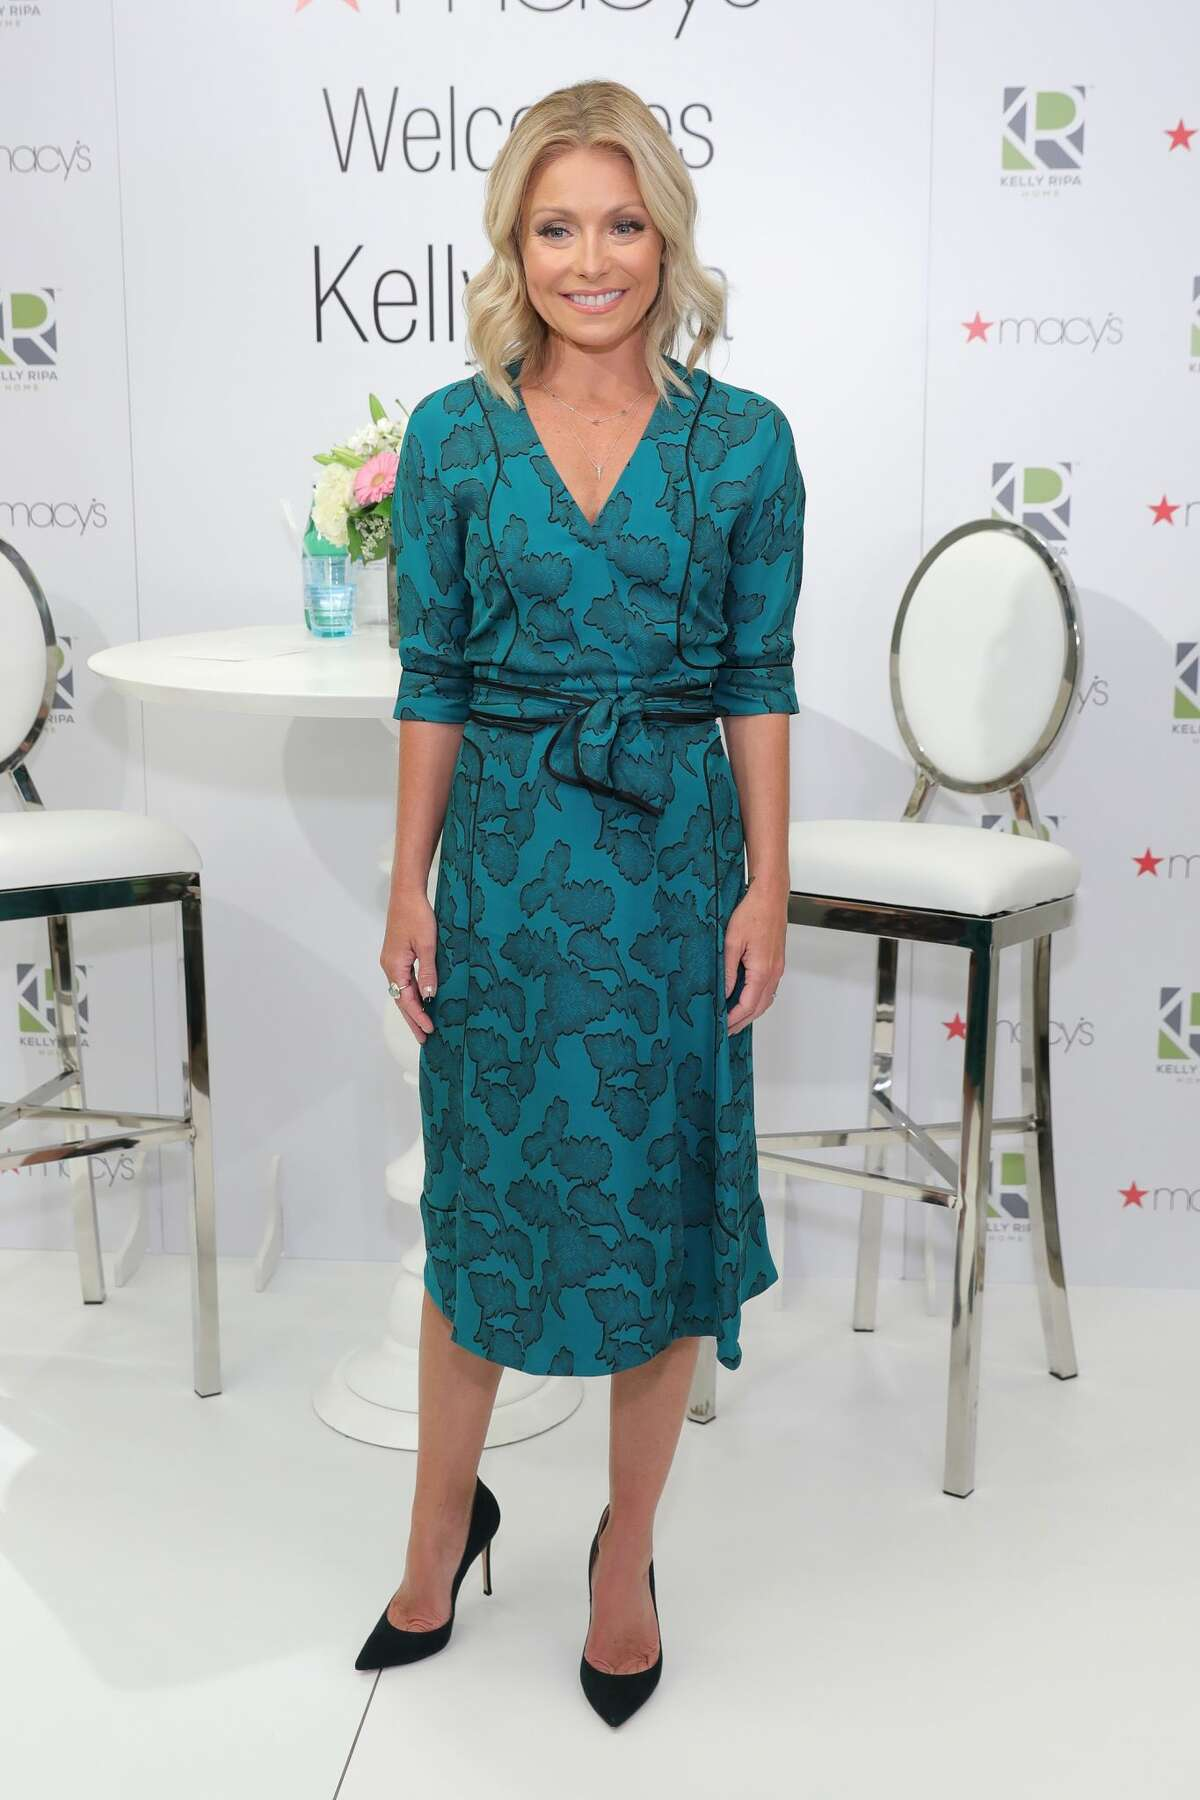 NEW YORK, NY - JULY 20: Kelly Ripa attends the Kelly Ripa Home Collection for Macy's launch at Macy's Herald Square on July 20, 2016 in New York City. (Photo by Neilson Barnard/Getty Images)